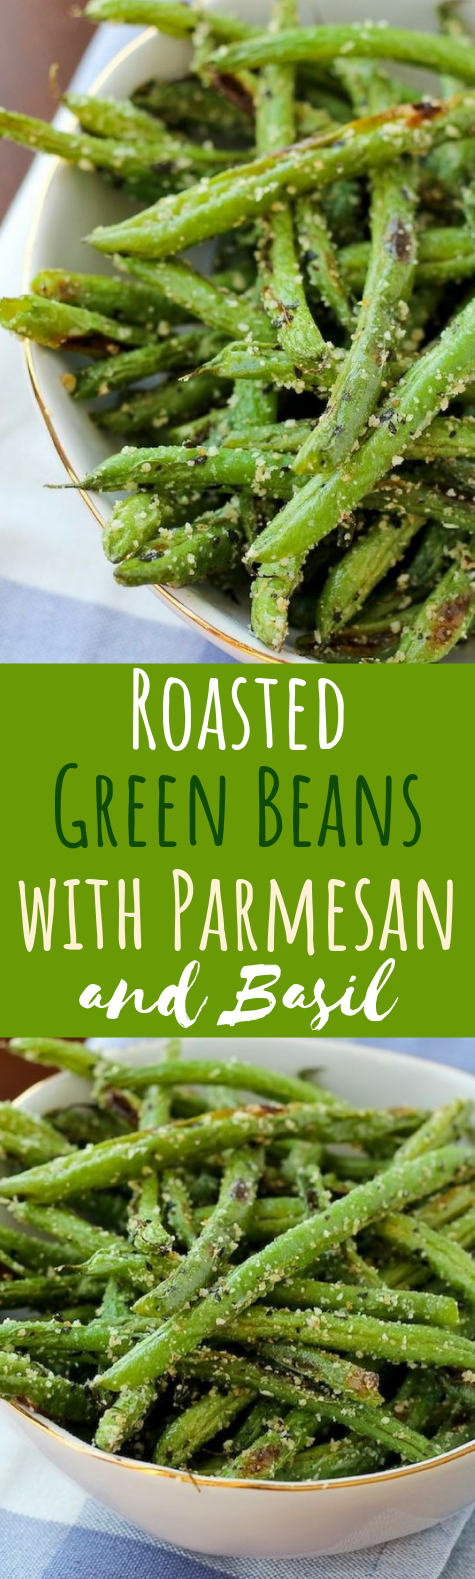 Roasted Green Beans with Parmesan and Basil #vegetarian #sidedish